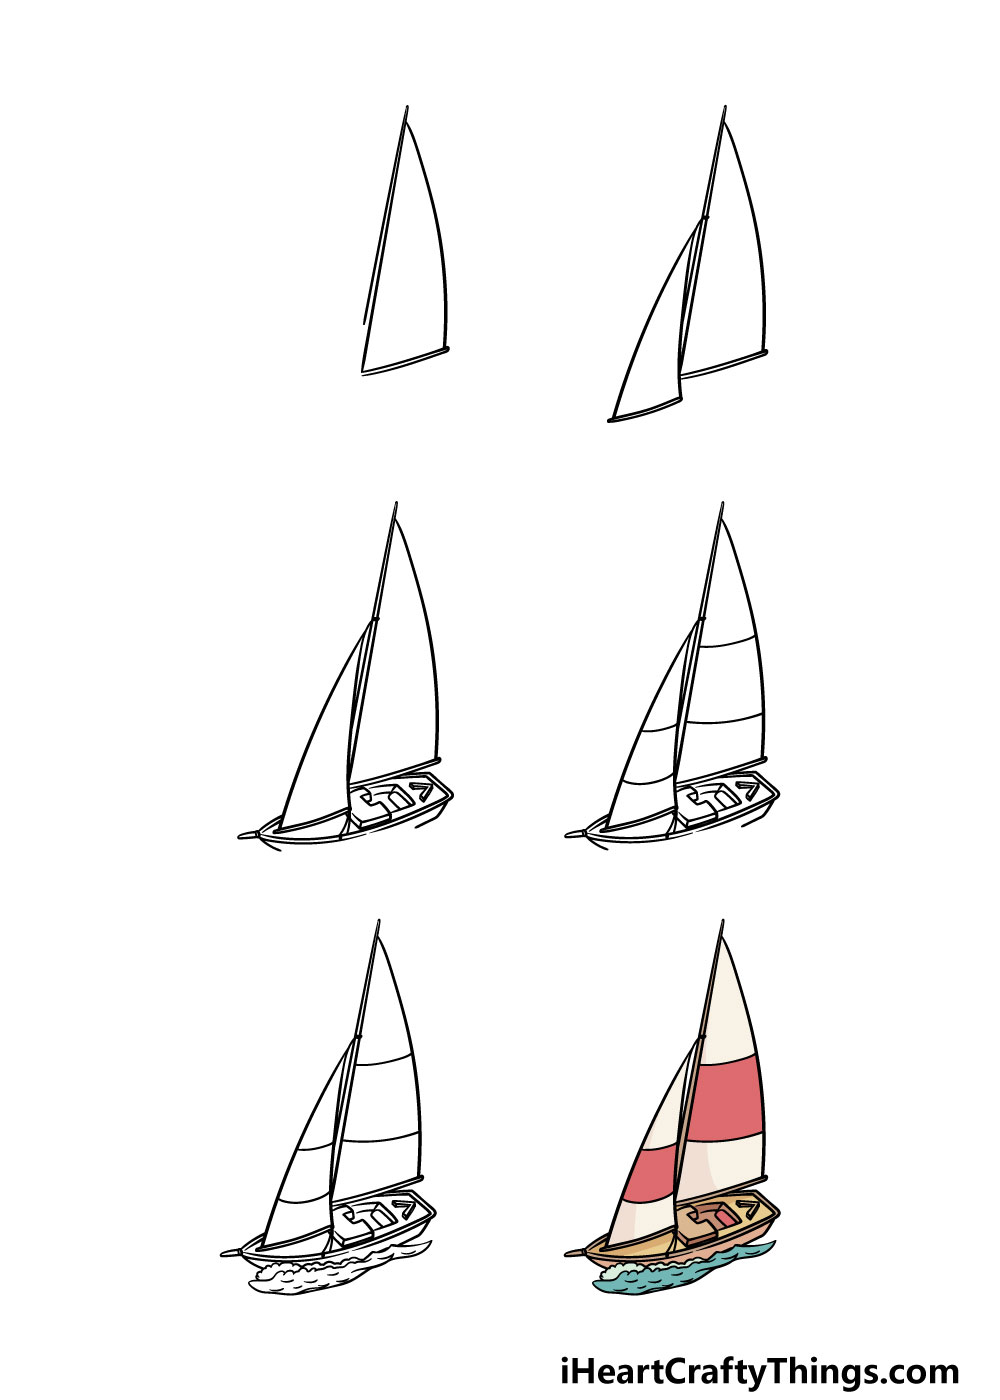 how to draw a sailboat in 6 steps